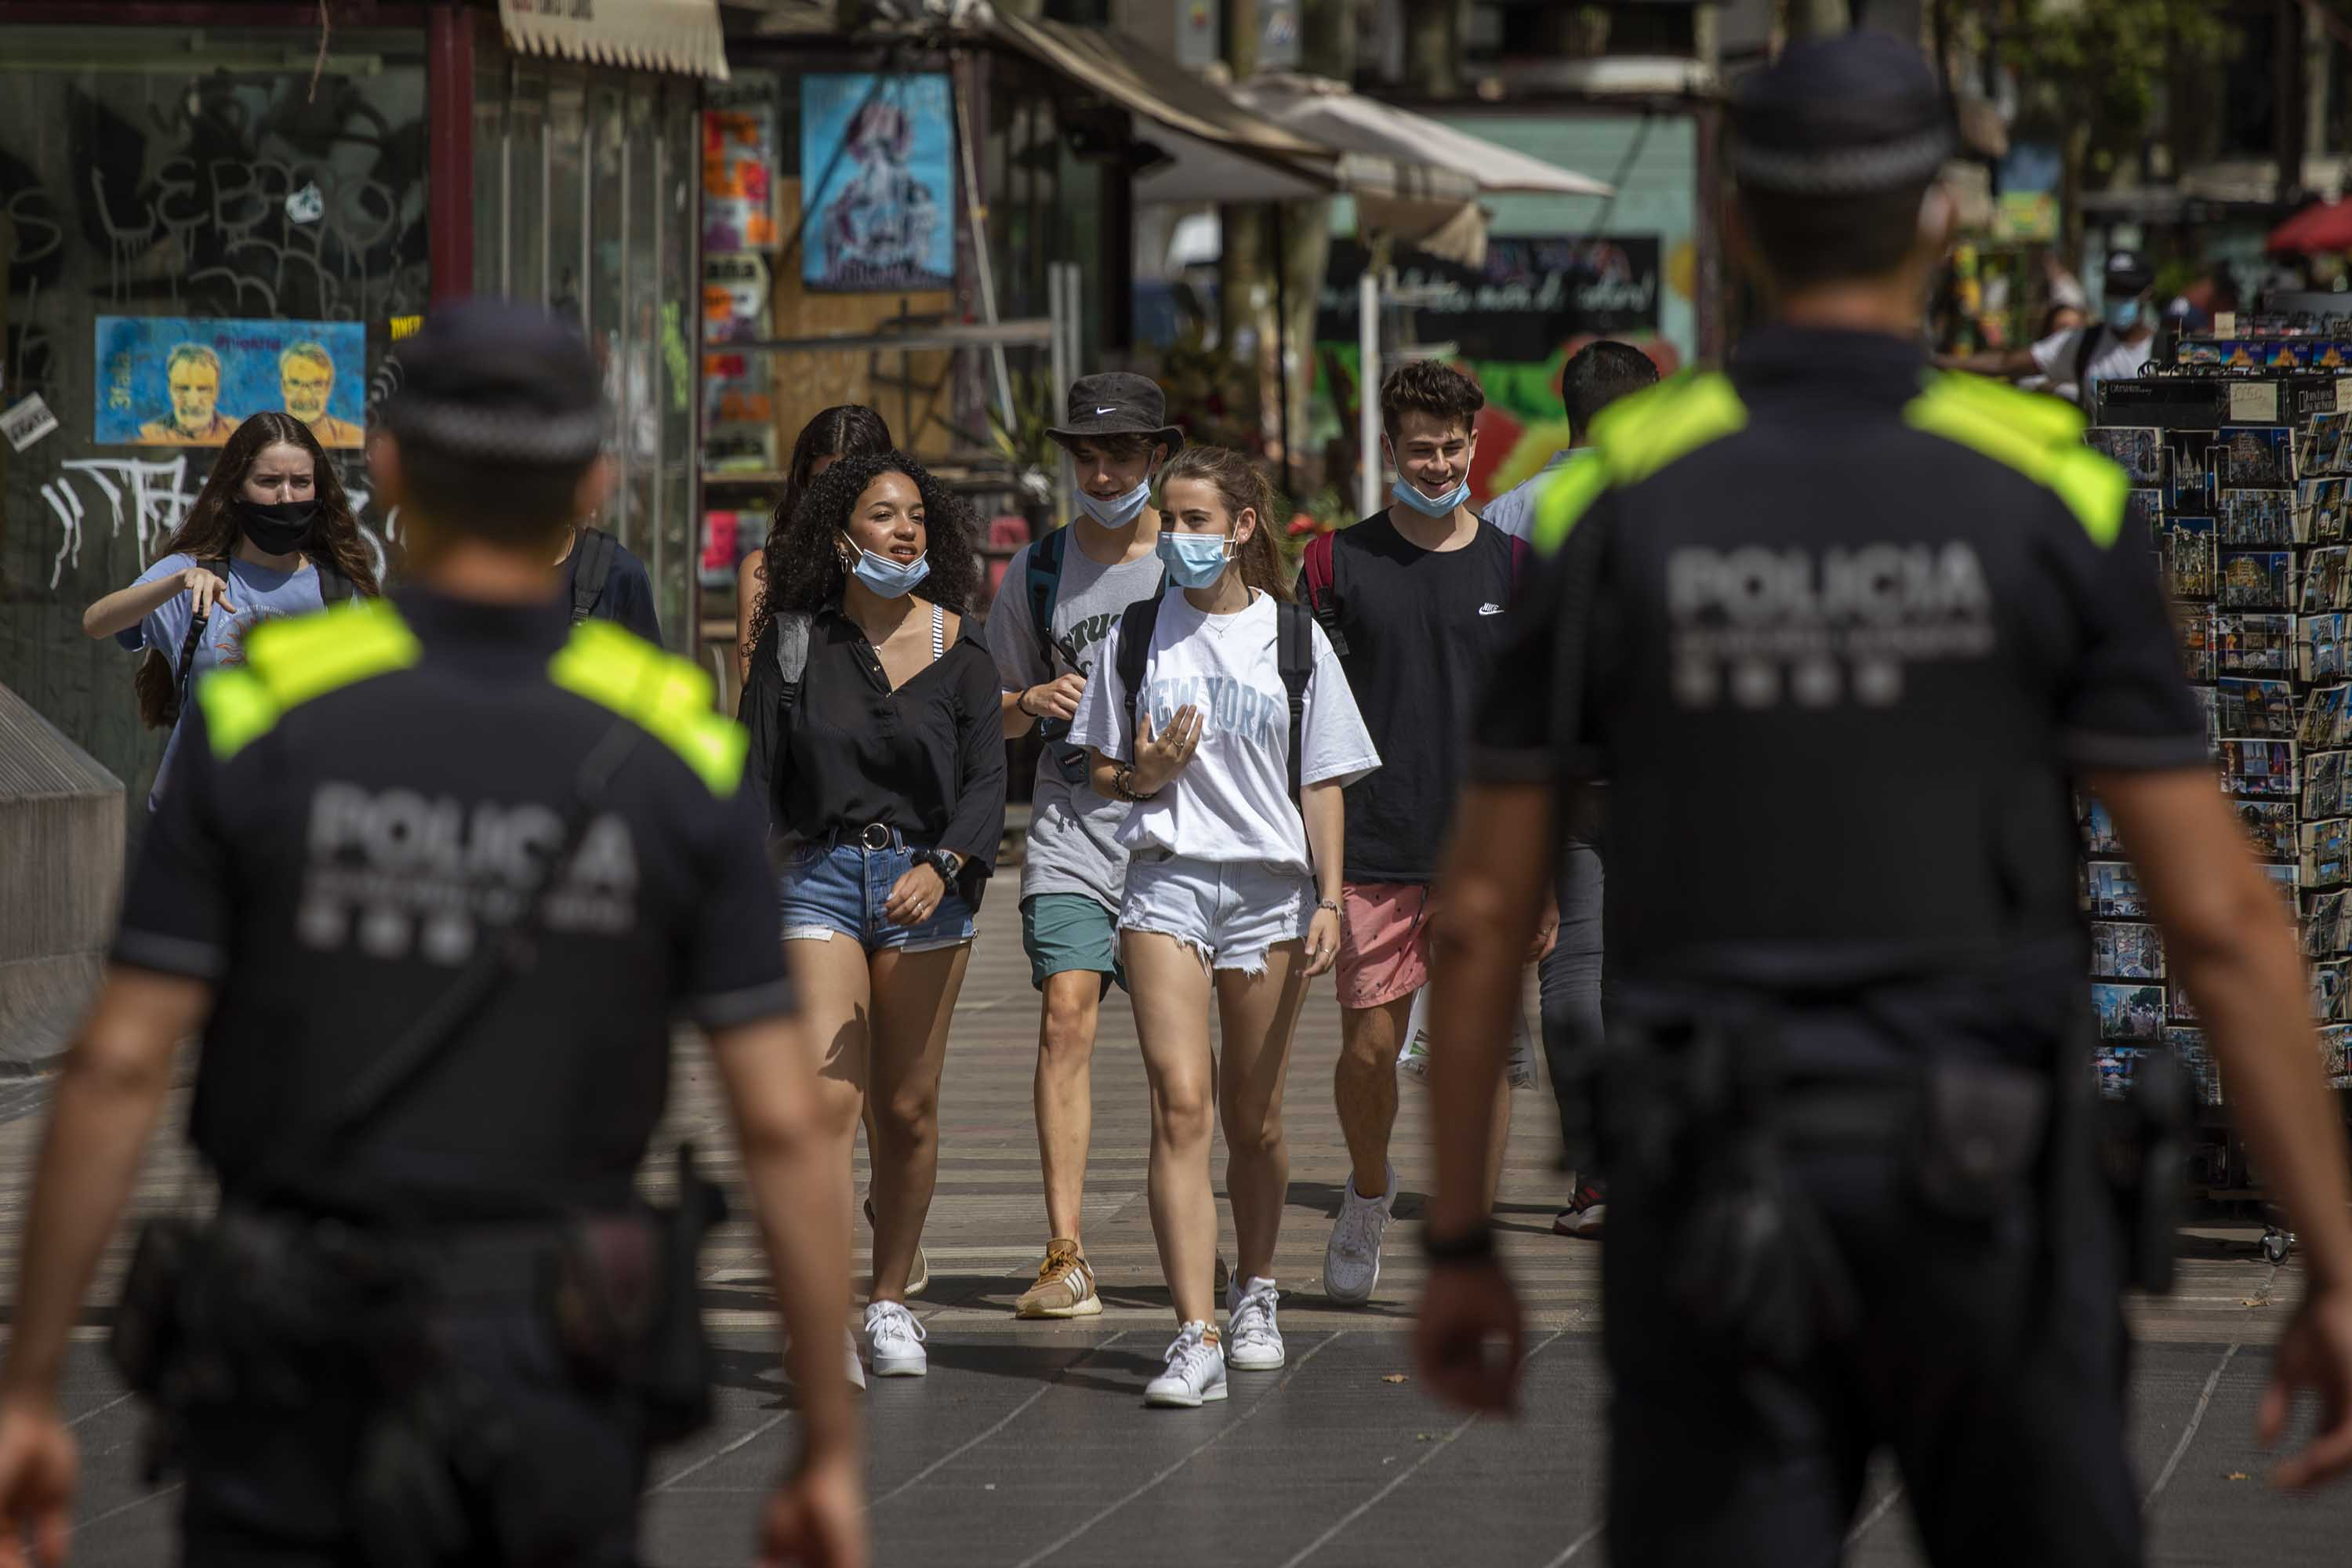 Catalan police officers patrol Las Ramblas in Barcelona, Spain, on Thursday, July 9, as the wearing of face masks in public became mandatory in the region.